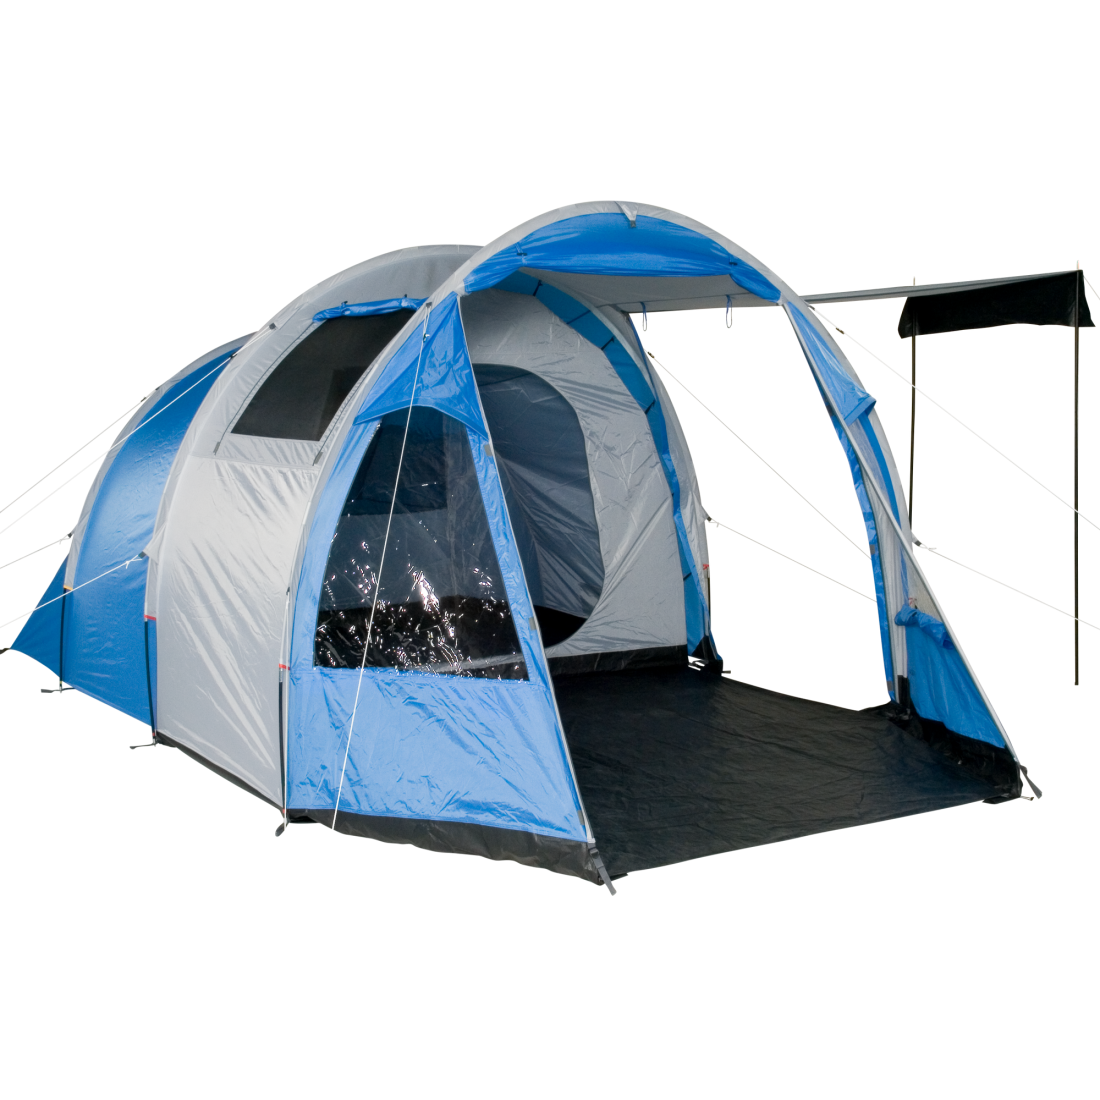 Tent Family tunnel tent with large living area windows ventilation and two entrances  sc 1 st  C&ing-Outdoor.eu & Buy Family tents at Camping Outdoor online.